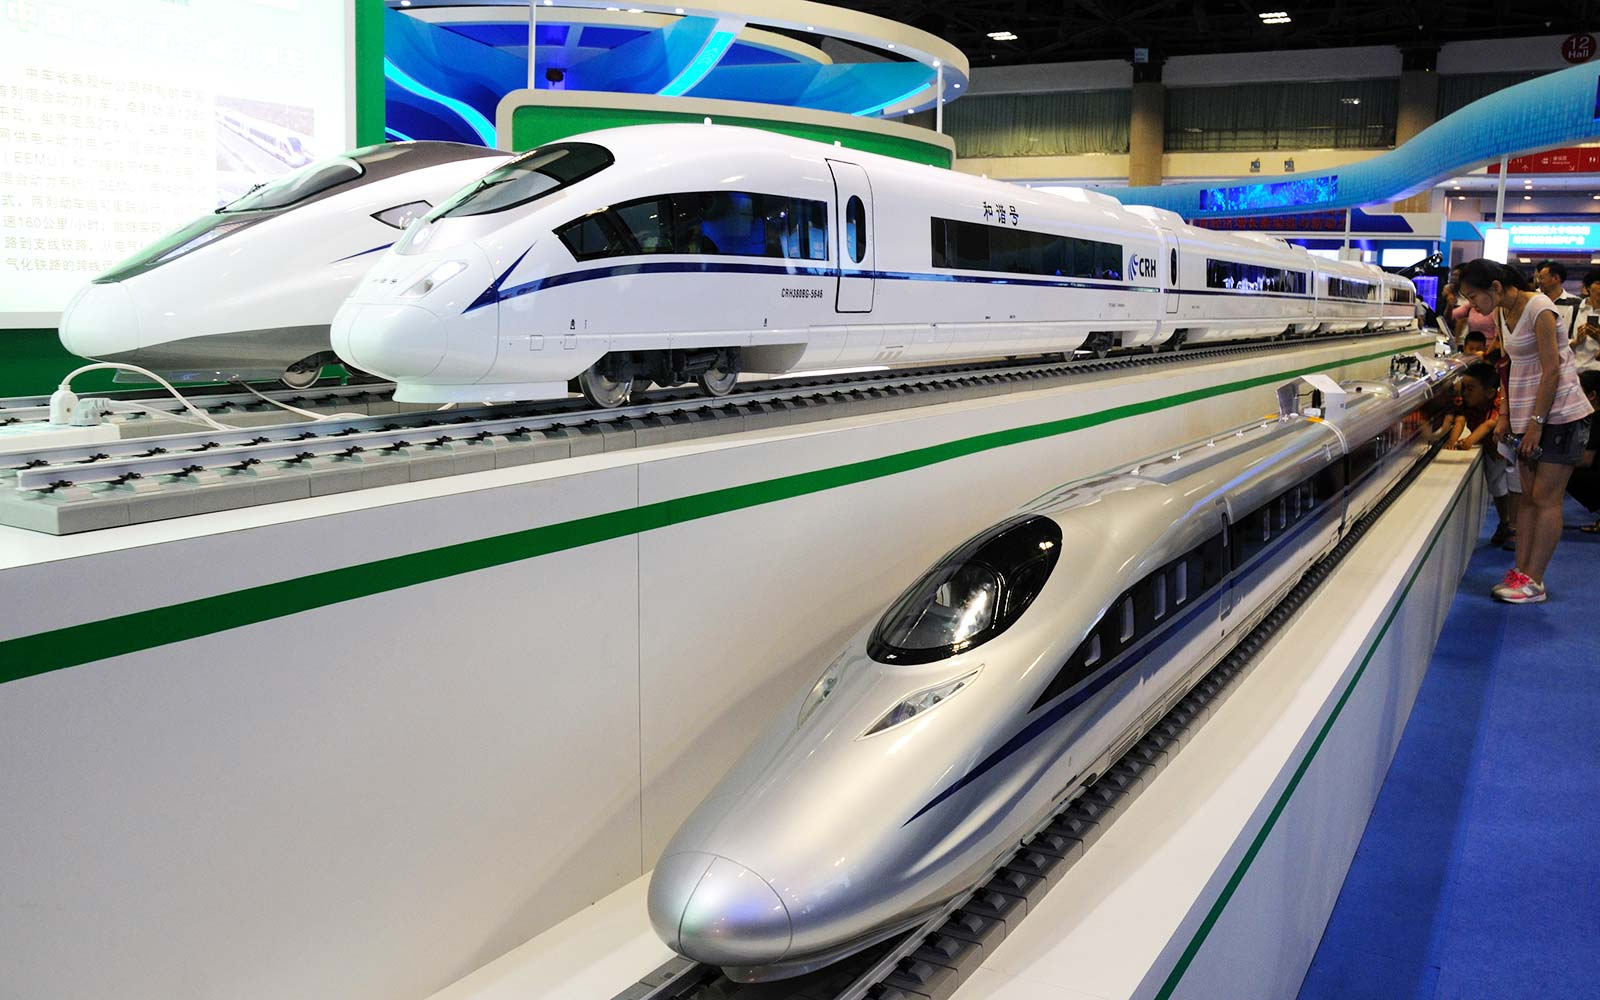 China Railway Rolling Stock Corporation (CRRC) high-speed bullet trains